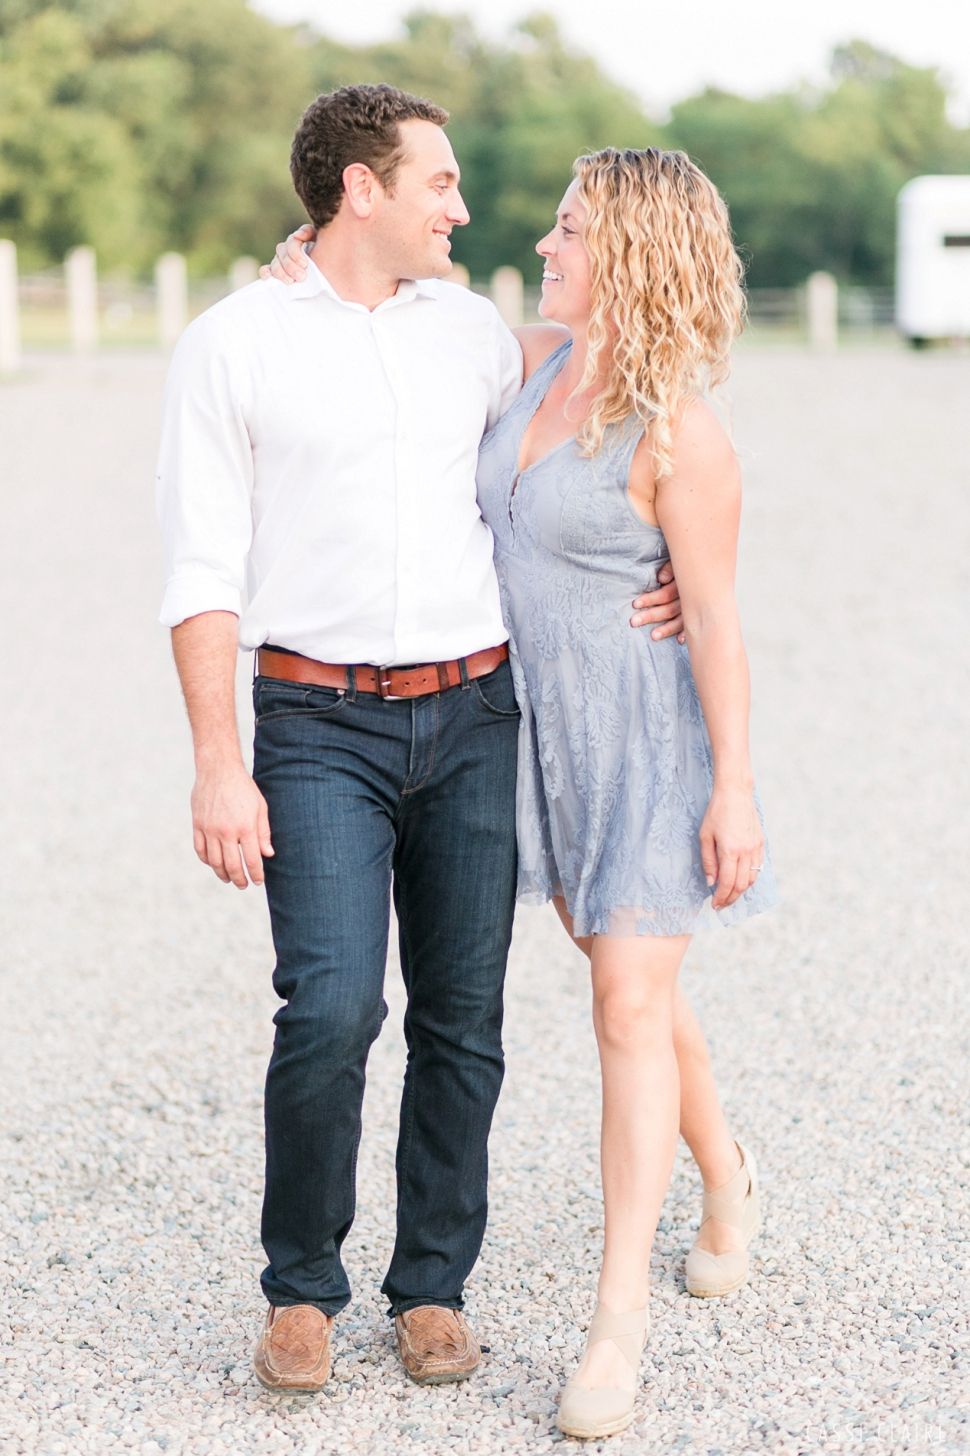 NJ-Farm-Engagement-Photos_05.jpg